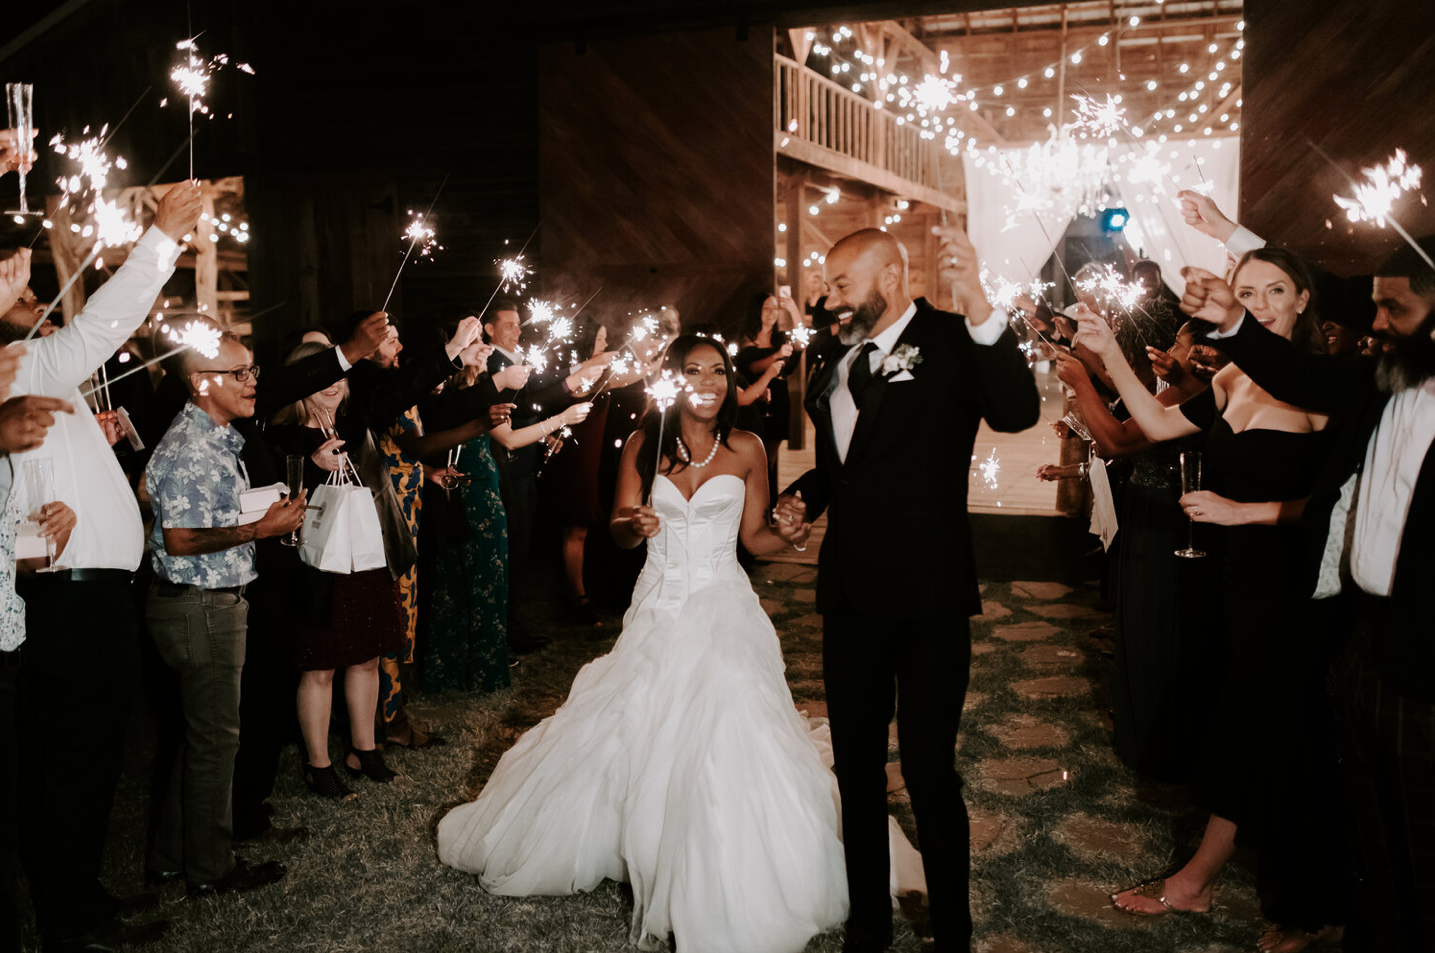 A wedding couple an their guests are celebration at the Barn at the Woodson of the wedding venues in Oklahoma.